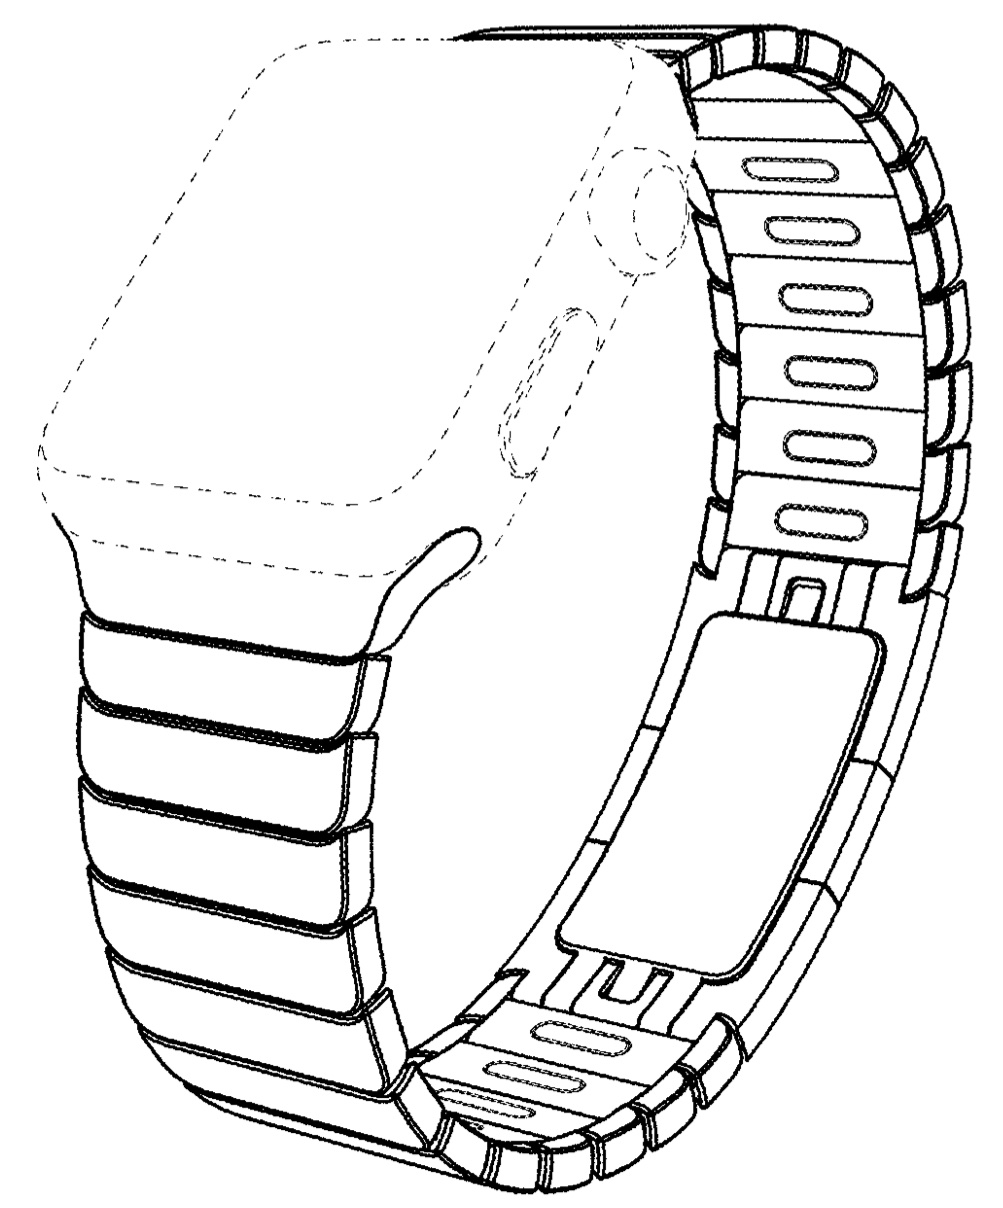 Apple awarded patents for Apple Watch Sport Band, Classic